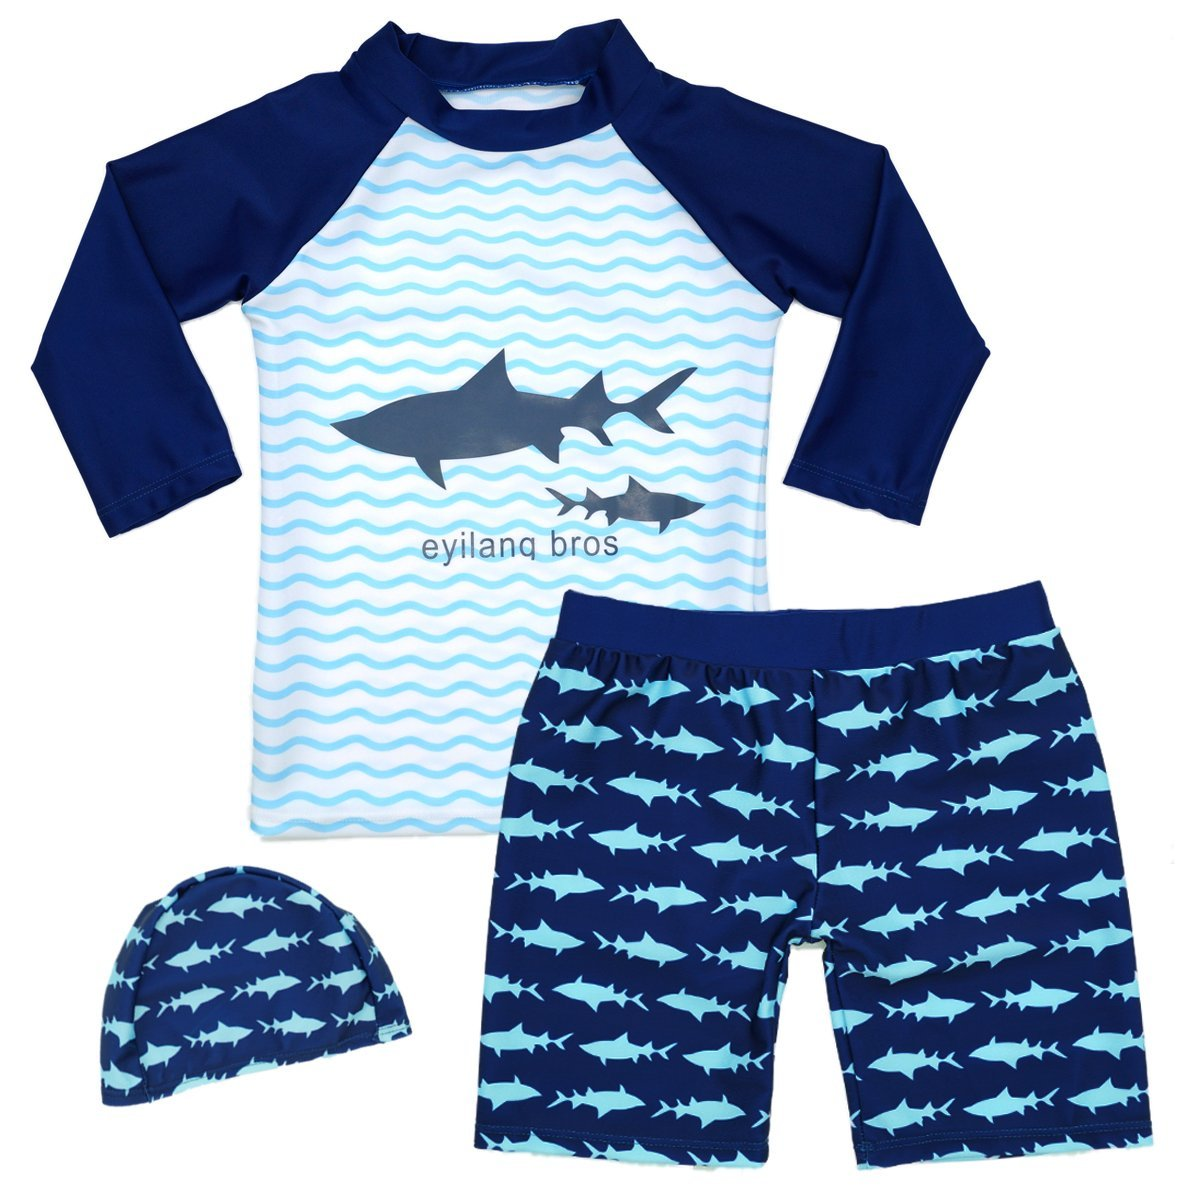 Boys Two Piece Rash Guard Swimsuits Kids Short Sleeve Sunsuit Swimwear Sets UPF 50+